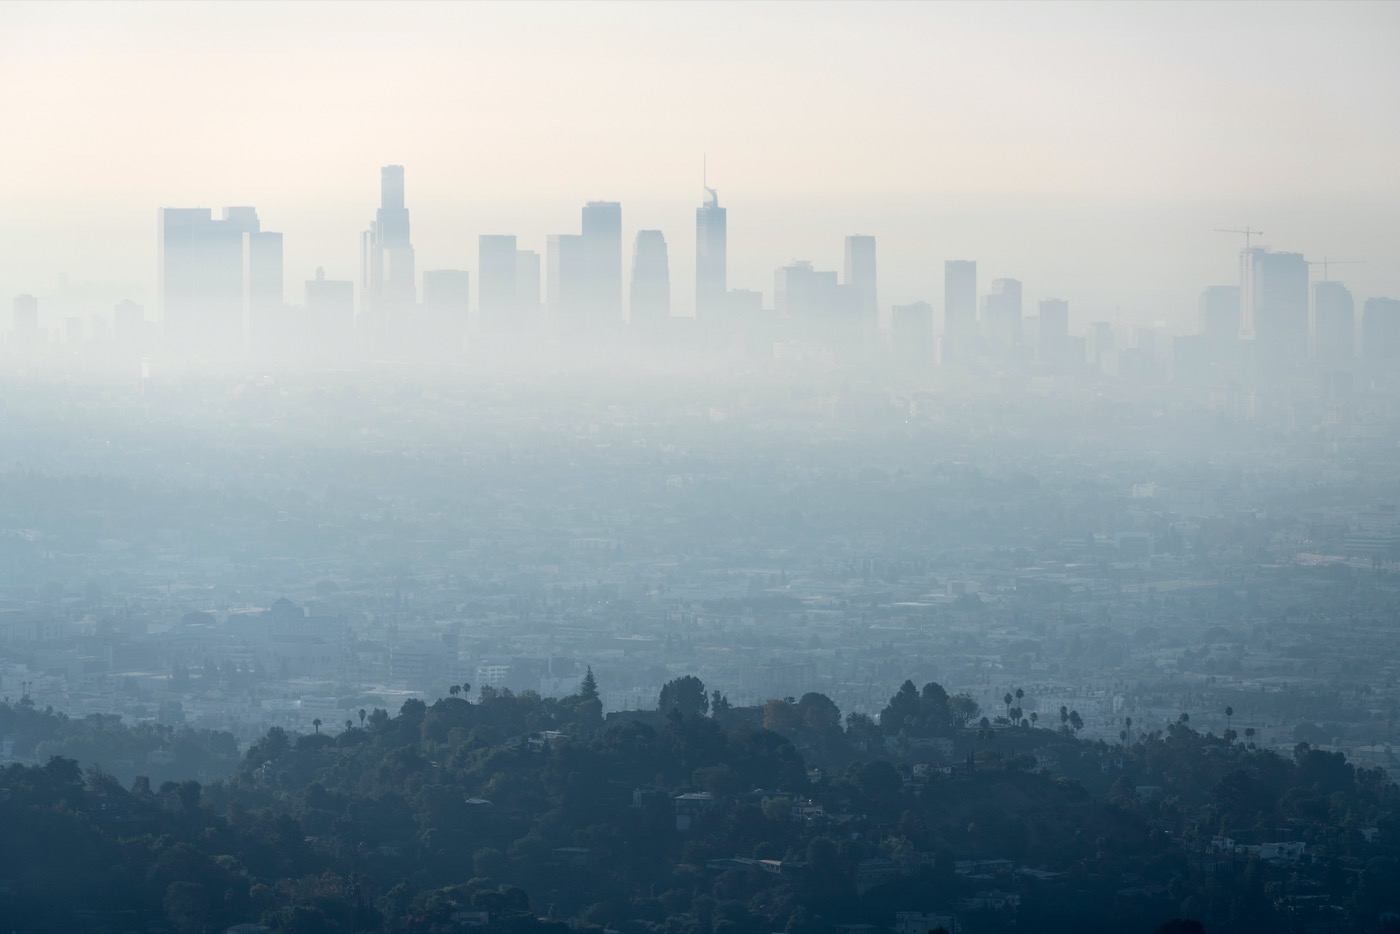 an arial view of downtown los angeles' skyscrapers, covered in haze and smog